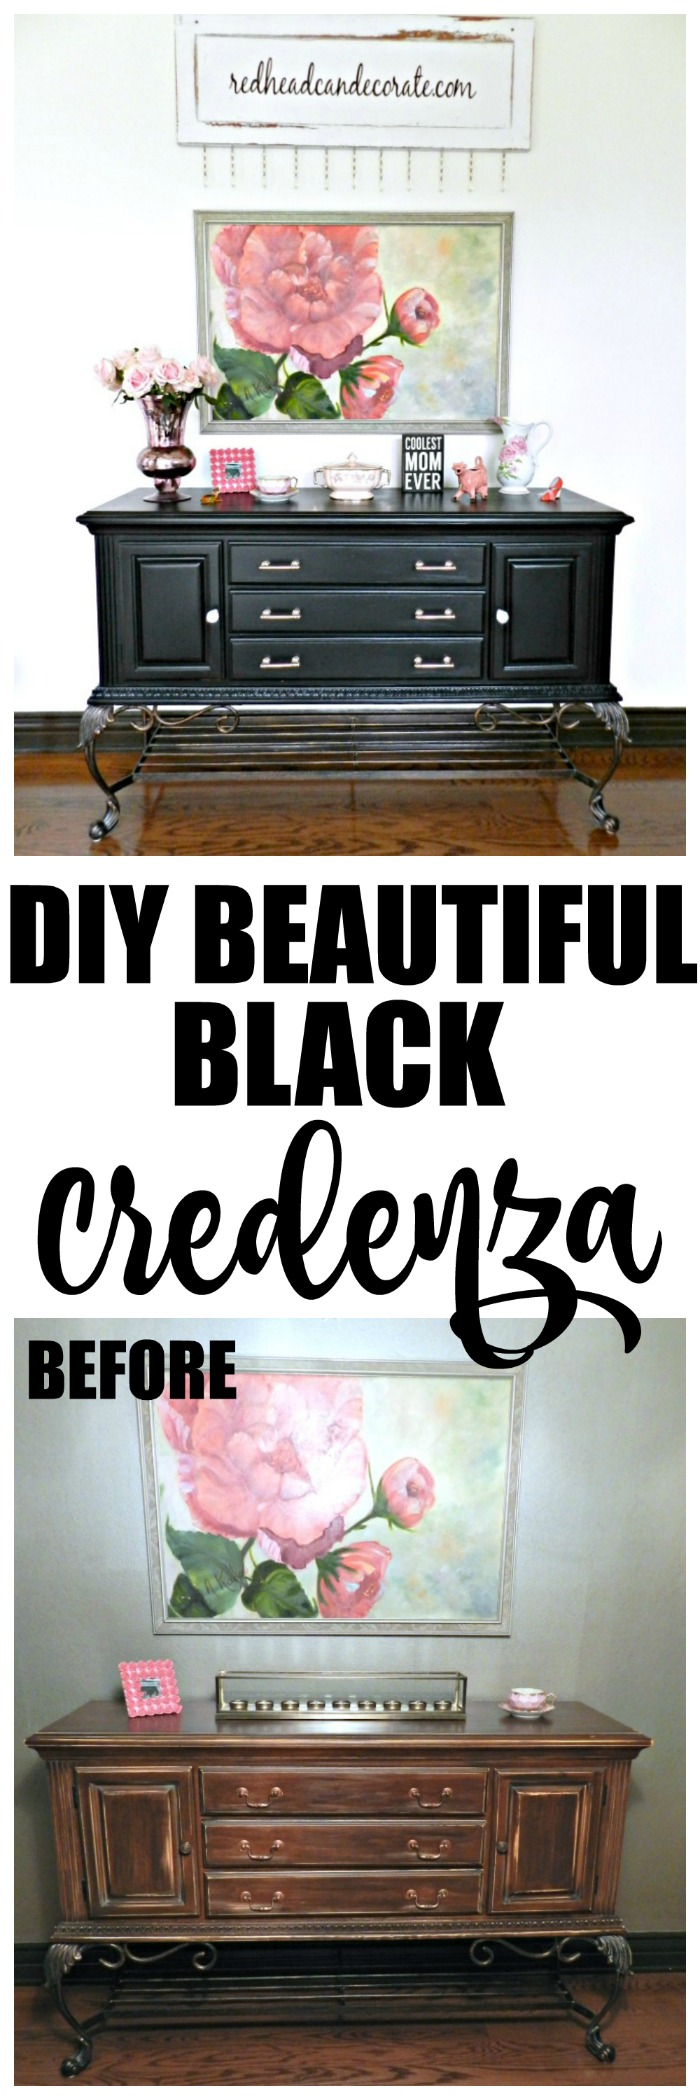 Check out this gorgeous black credenza makeover! When in doubt paint to black.